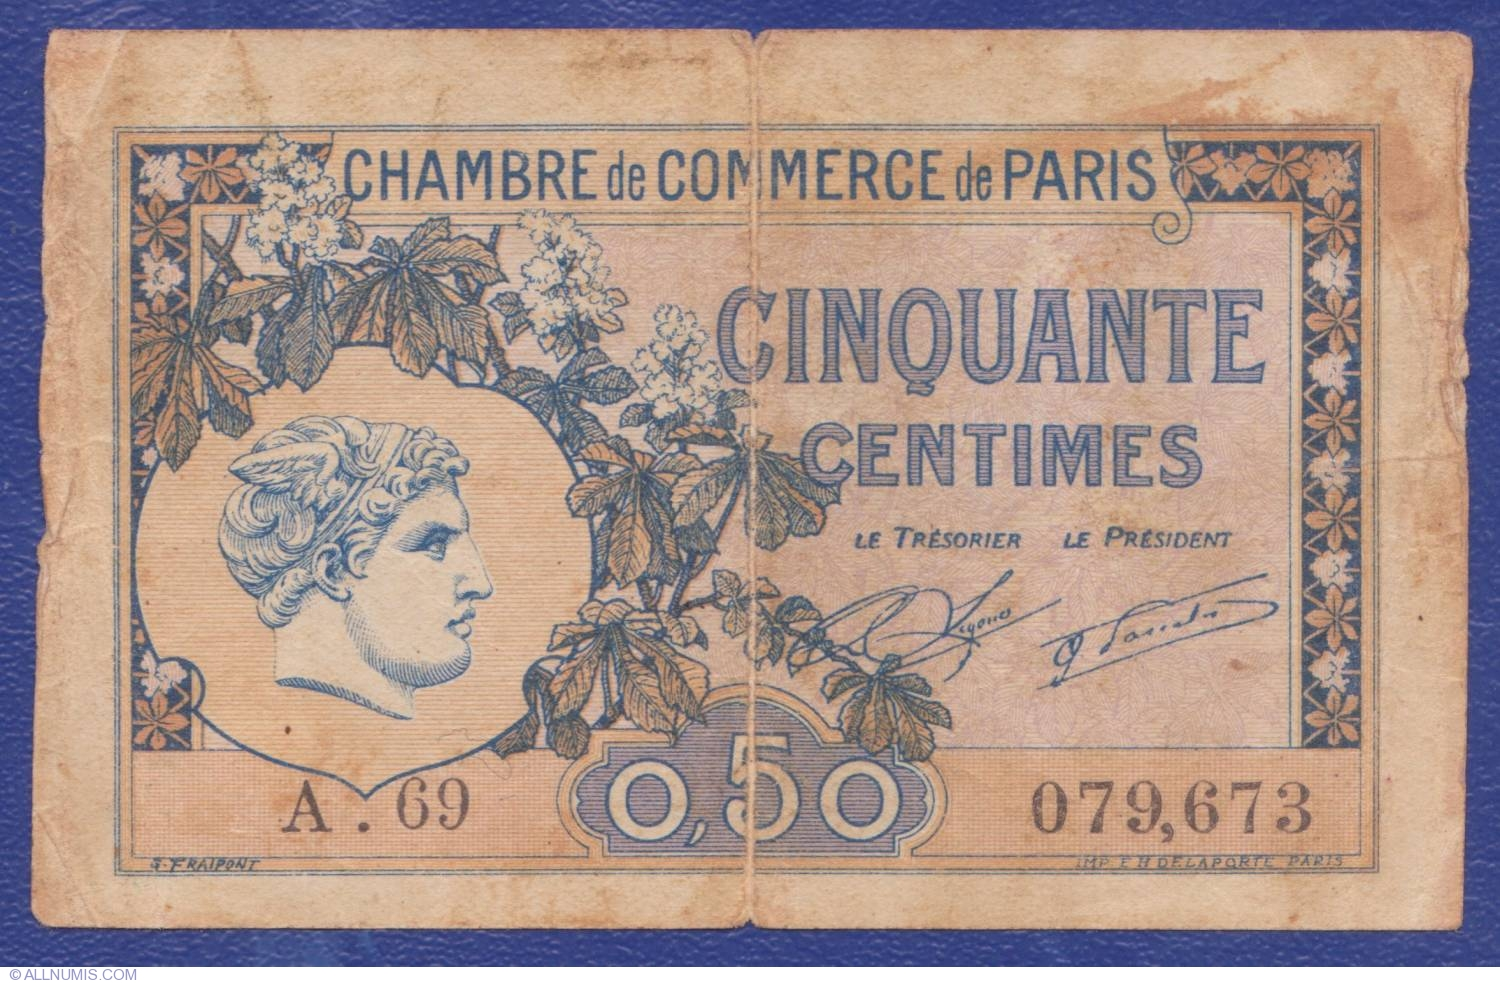 50 centimes 1920 paris chambre de commerce france for Chambre de commerce de france